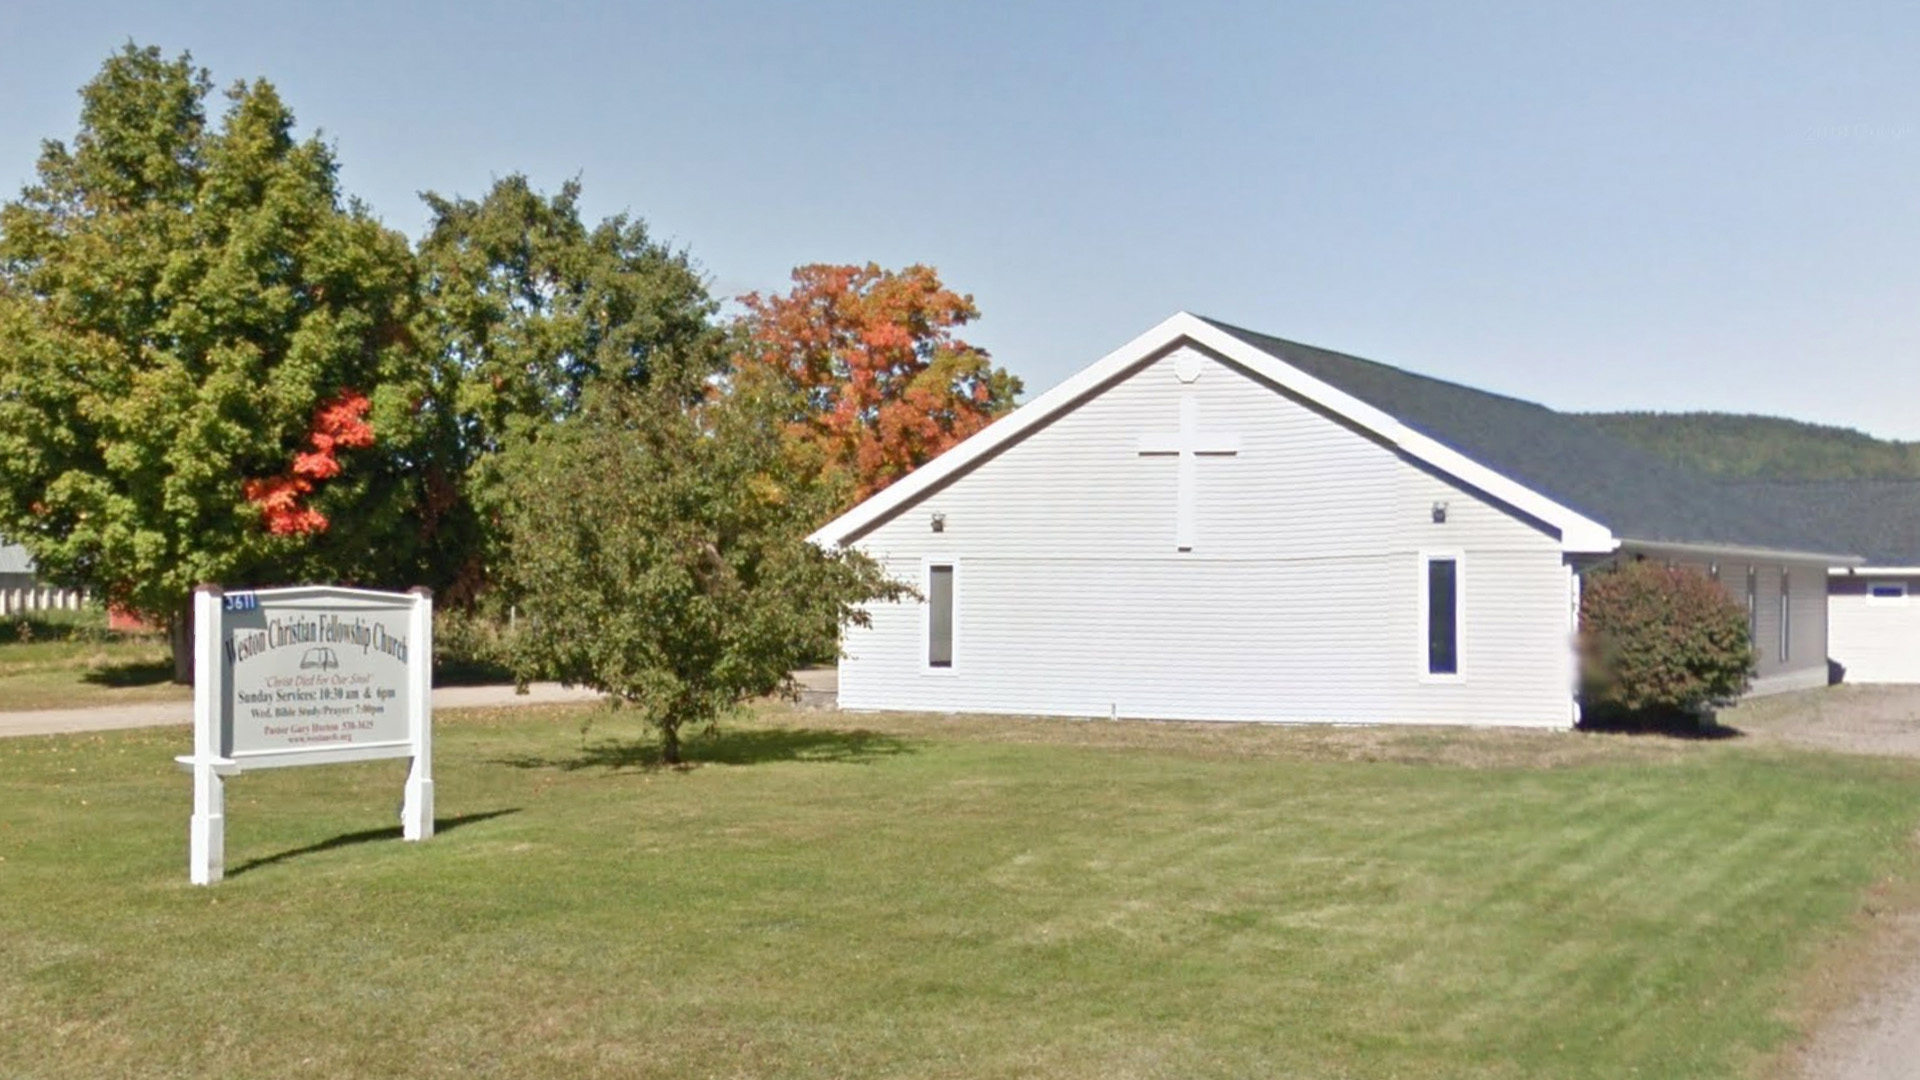 Police in Nova Scotia fine church, attendees for holding Sunday services